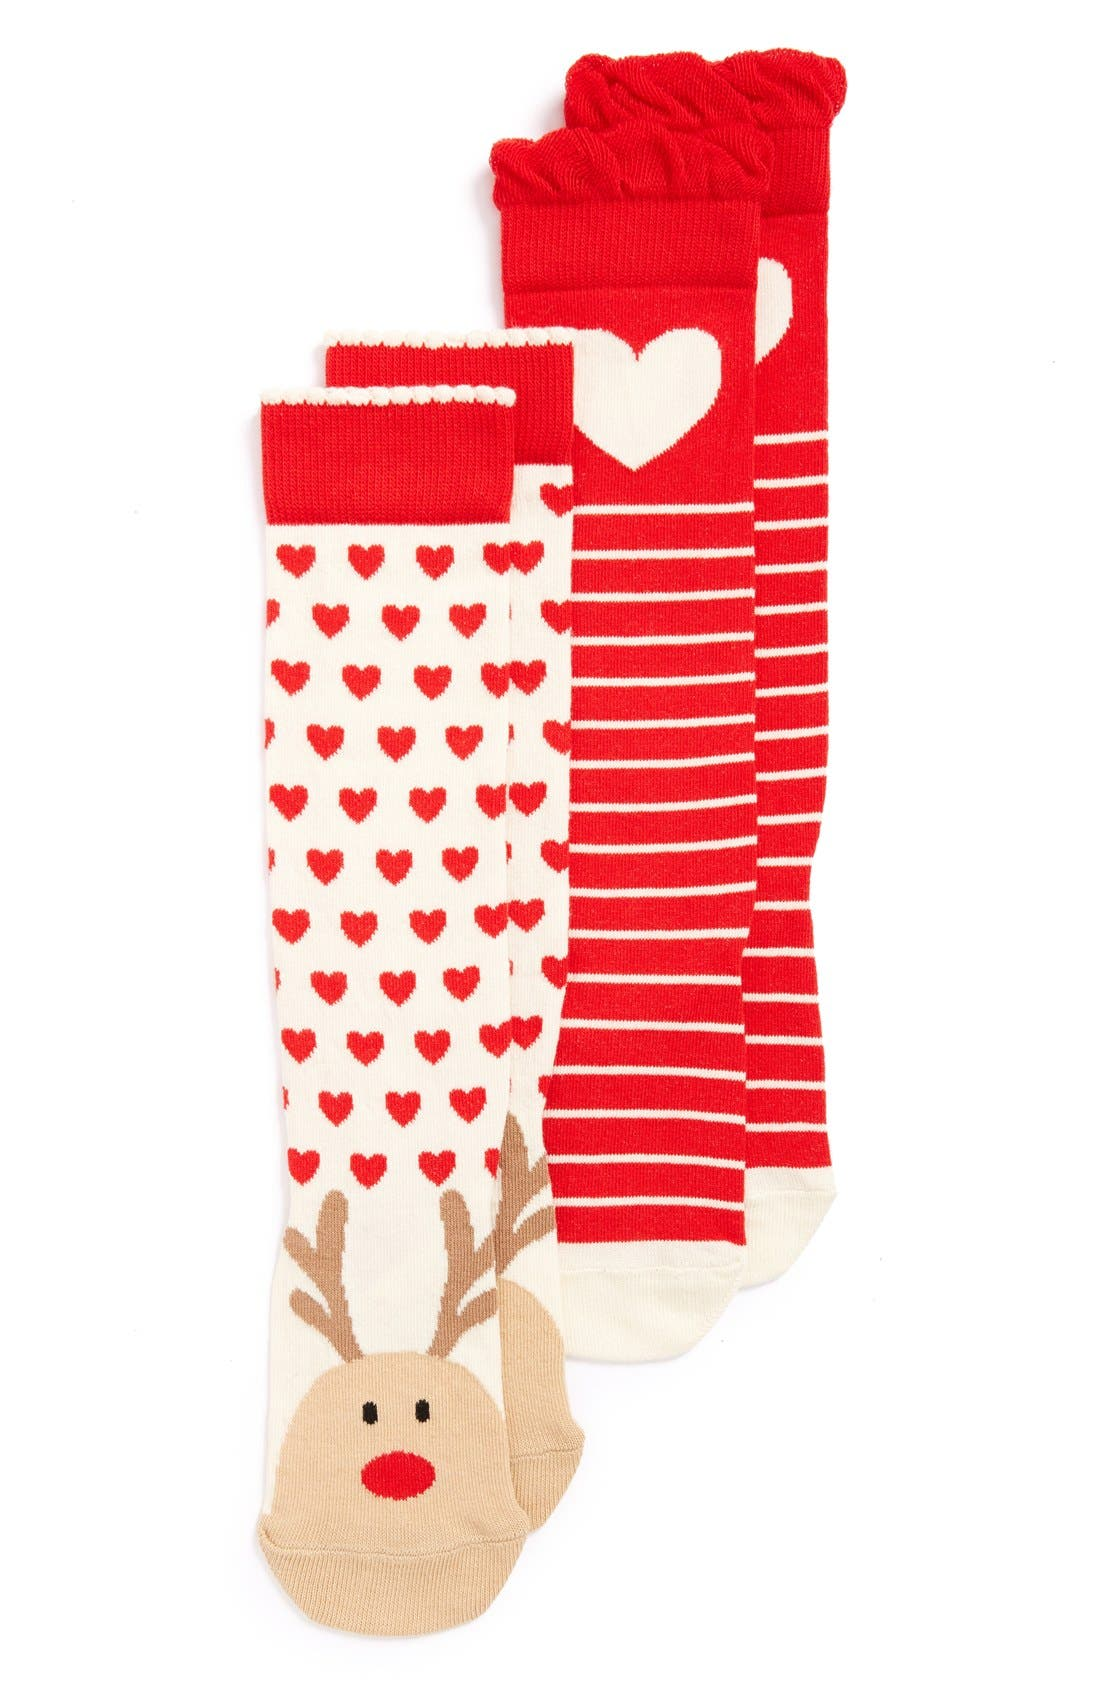 'Rudolph the Red Nosed Reindeer & Hearts' Knee High Socks,                             Alternate thumbnail 3, color,                             100